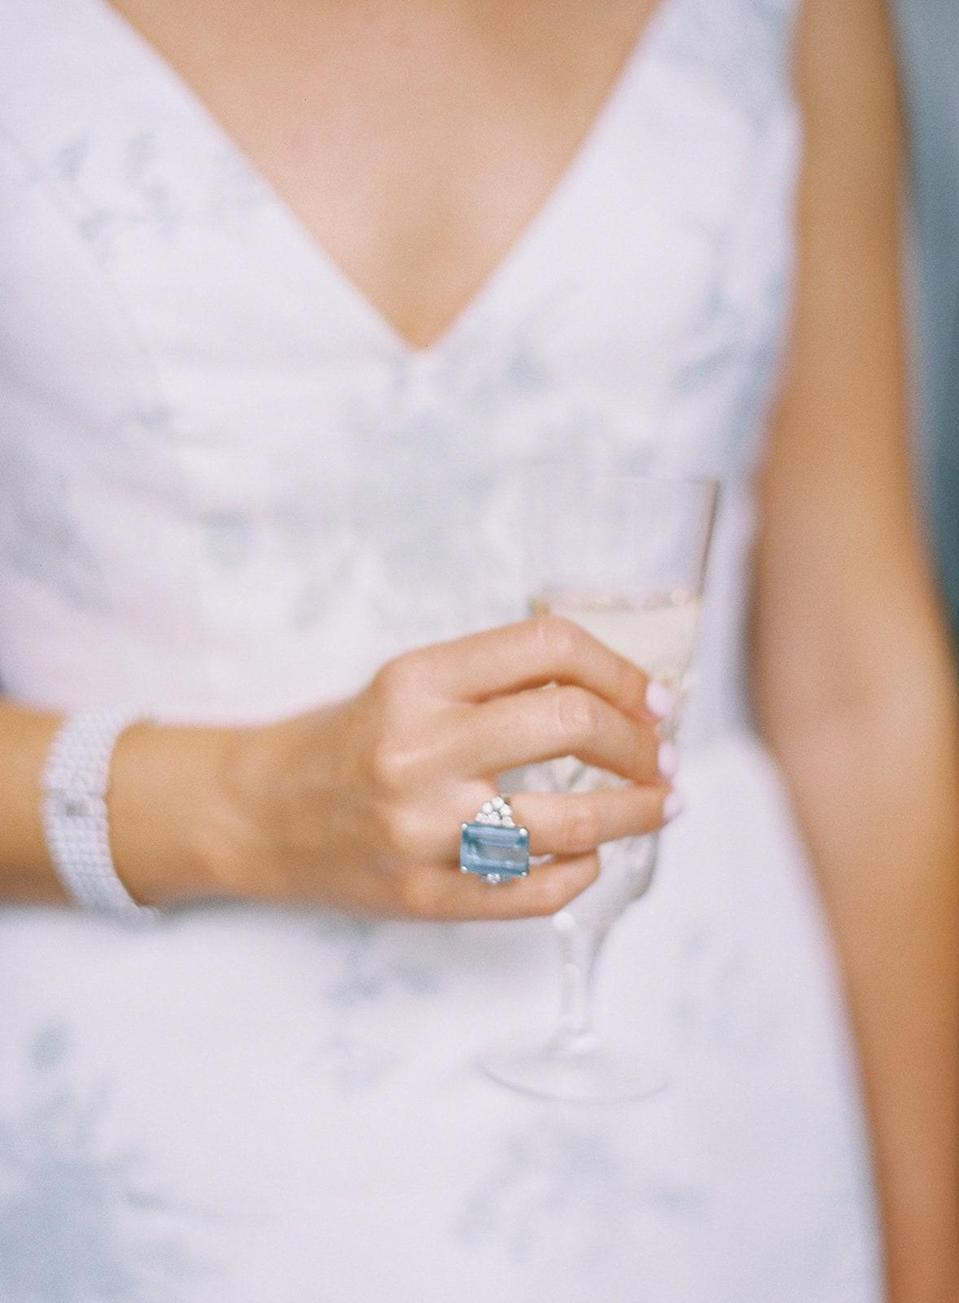 My Grandmother's aquamarine ring that is now my mom's. She let me wear it as my something blue.